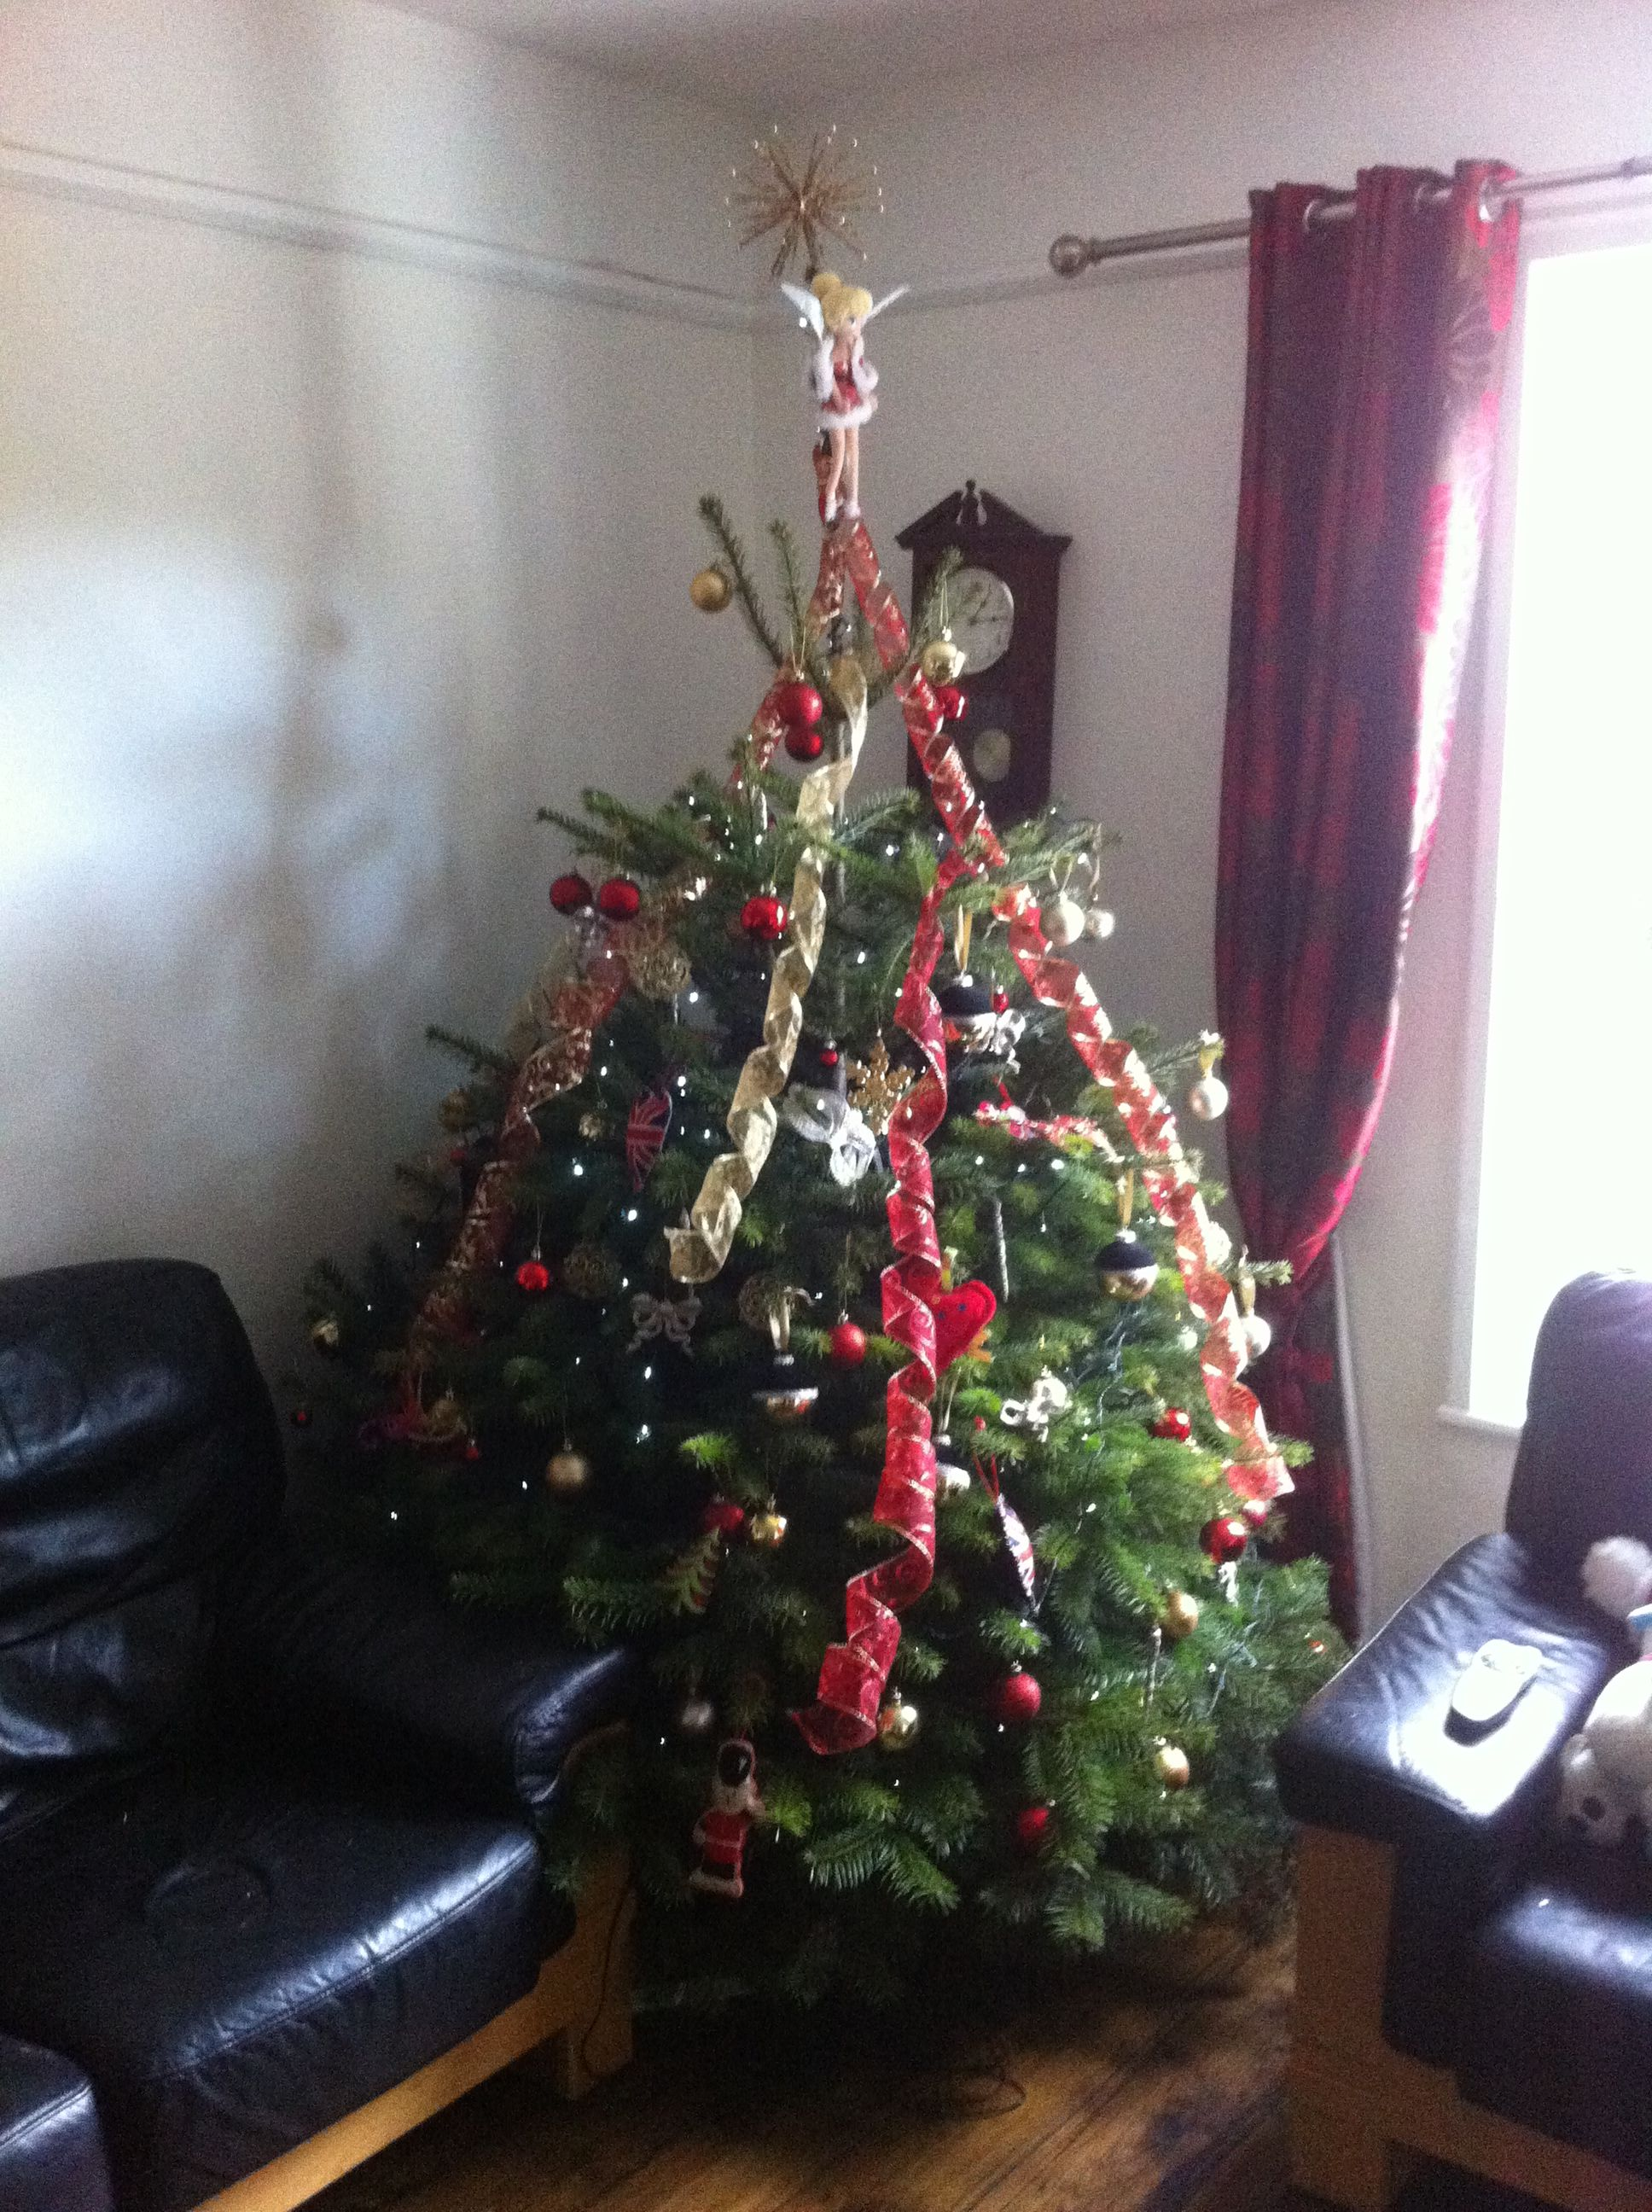 Our Christmas tree, December 2013!